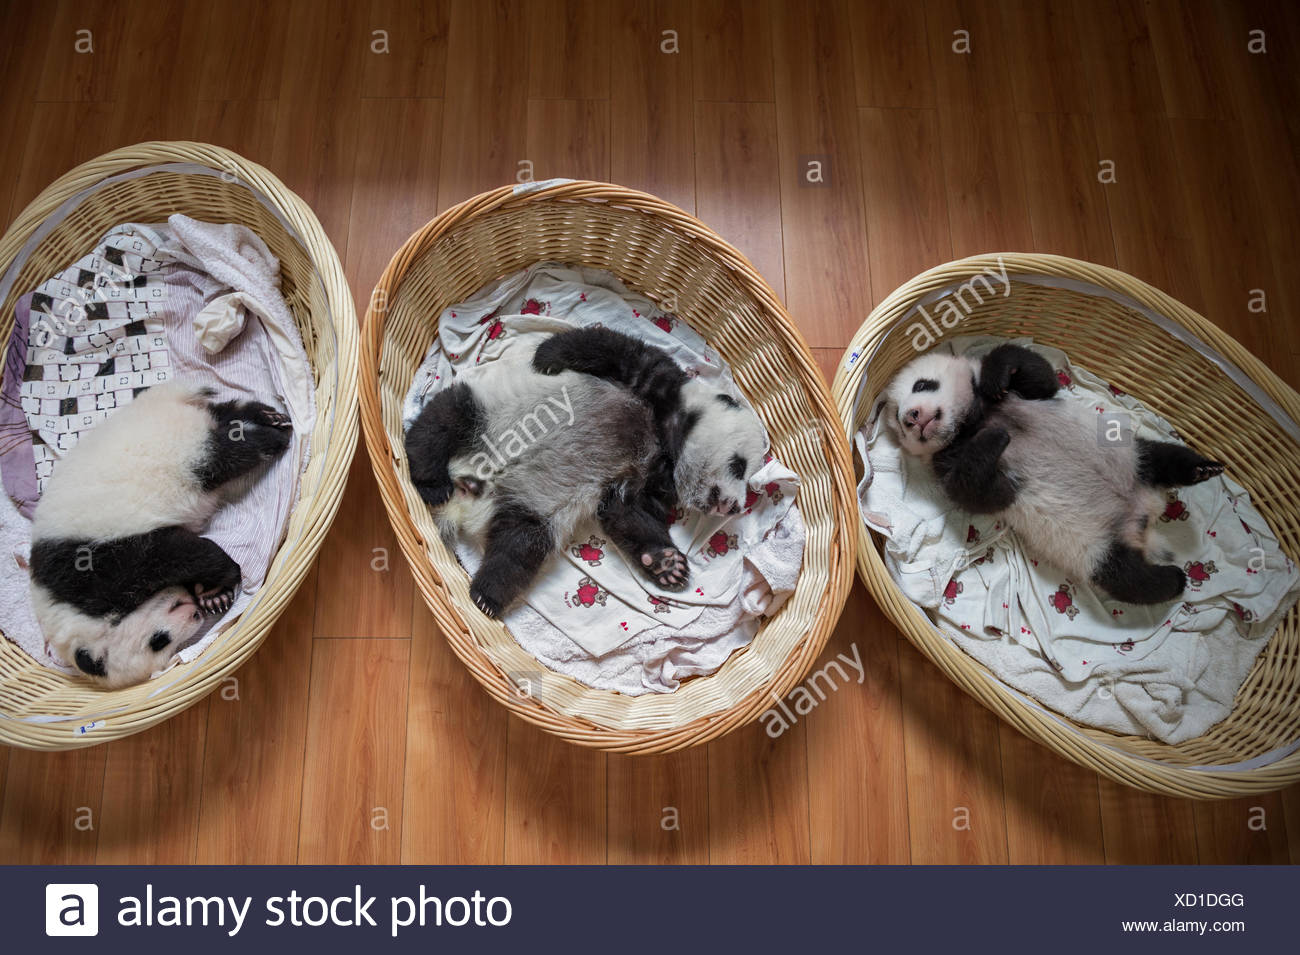 Three month-old cubs nap in the panda nursery at Bifengxia's Giant Panda Breeding and Research Center - Stock Image